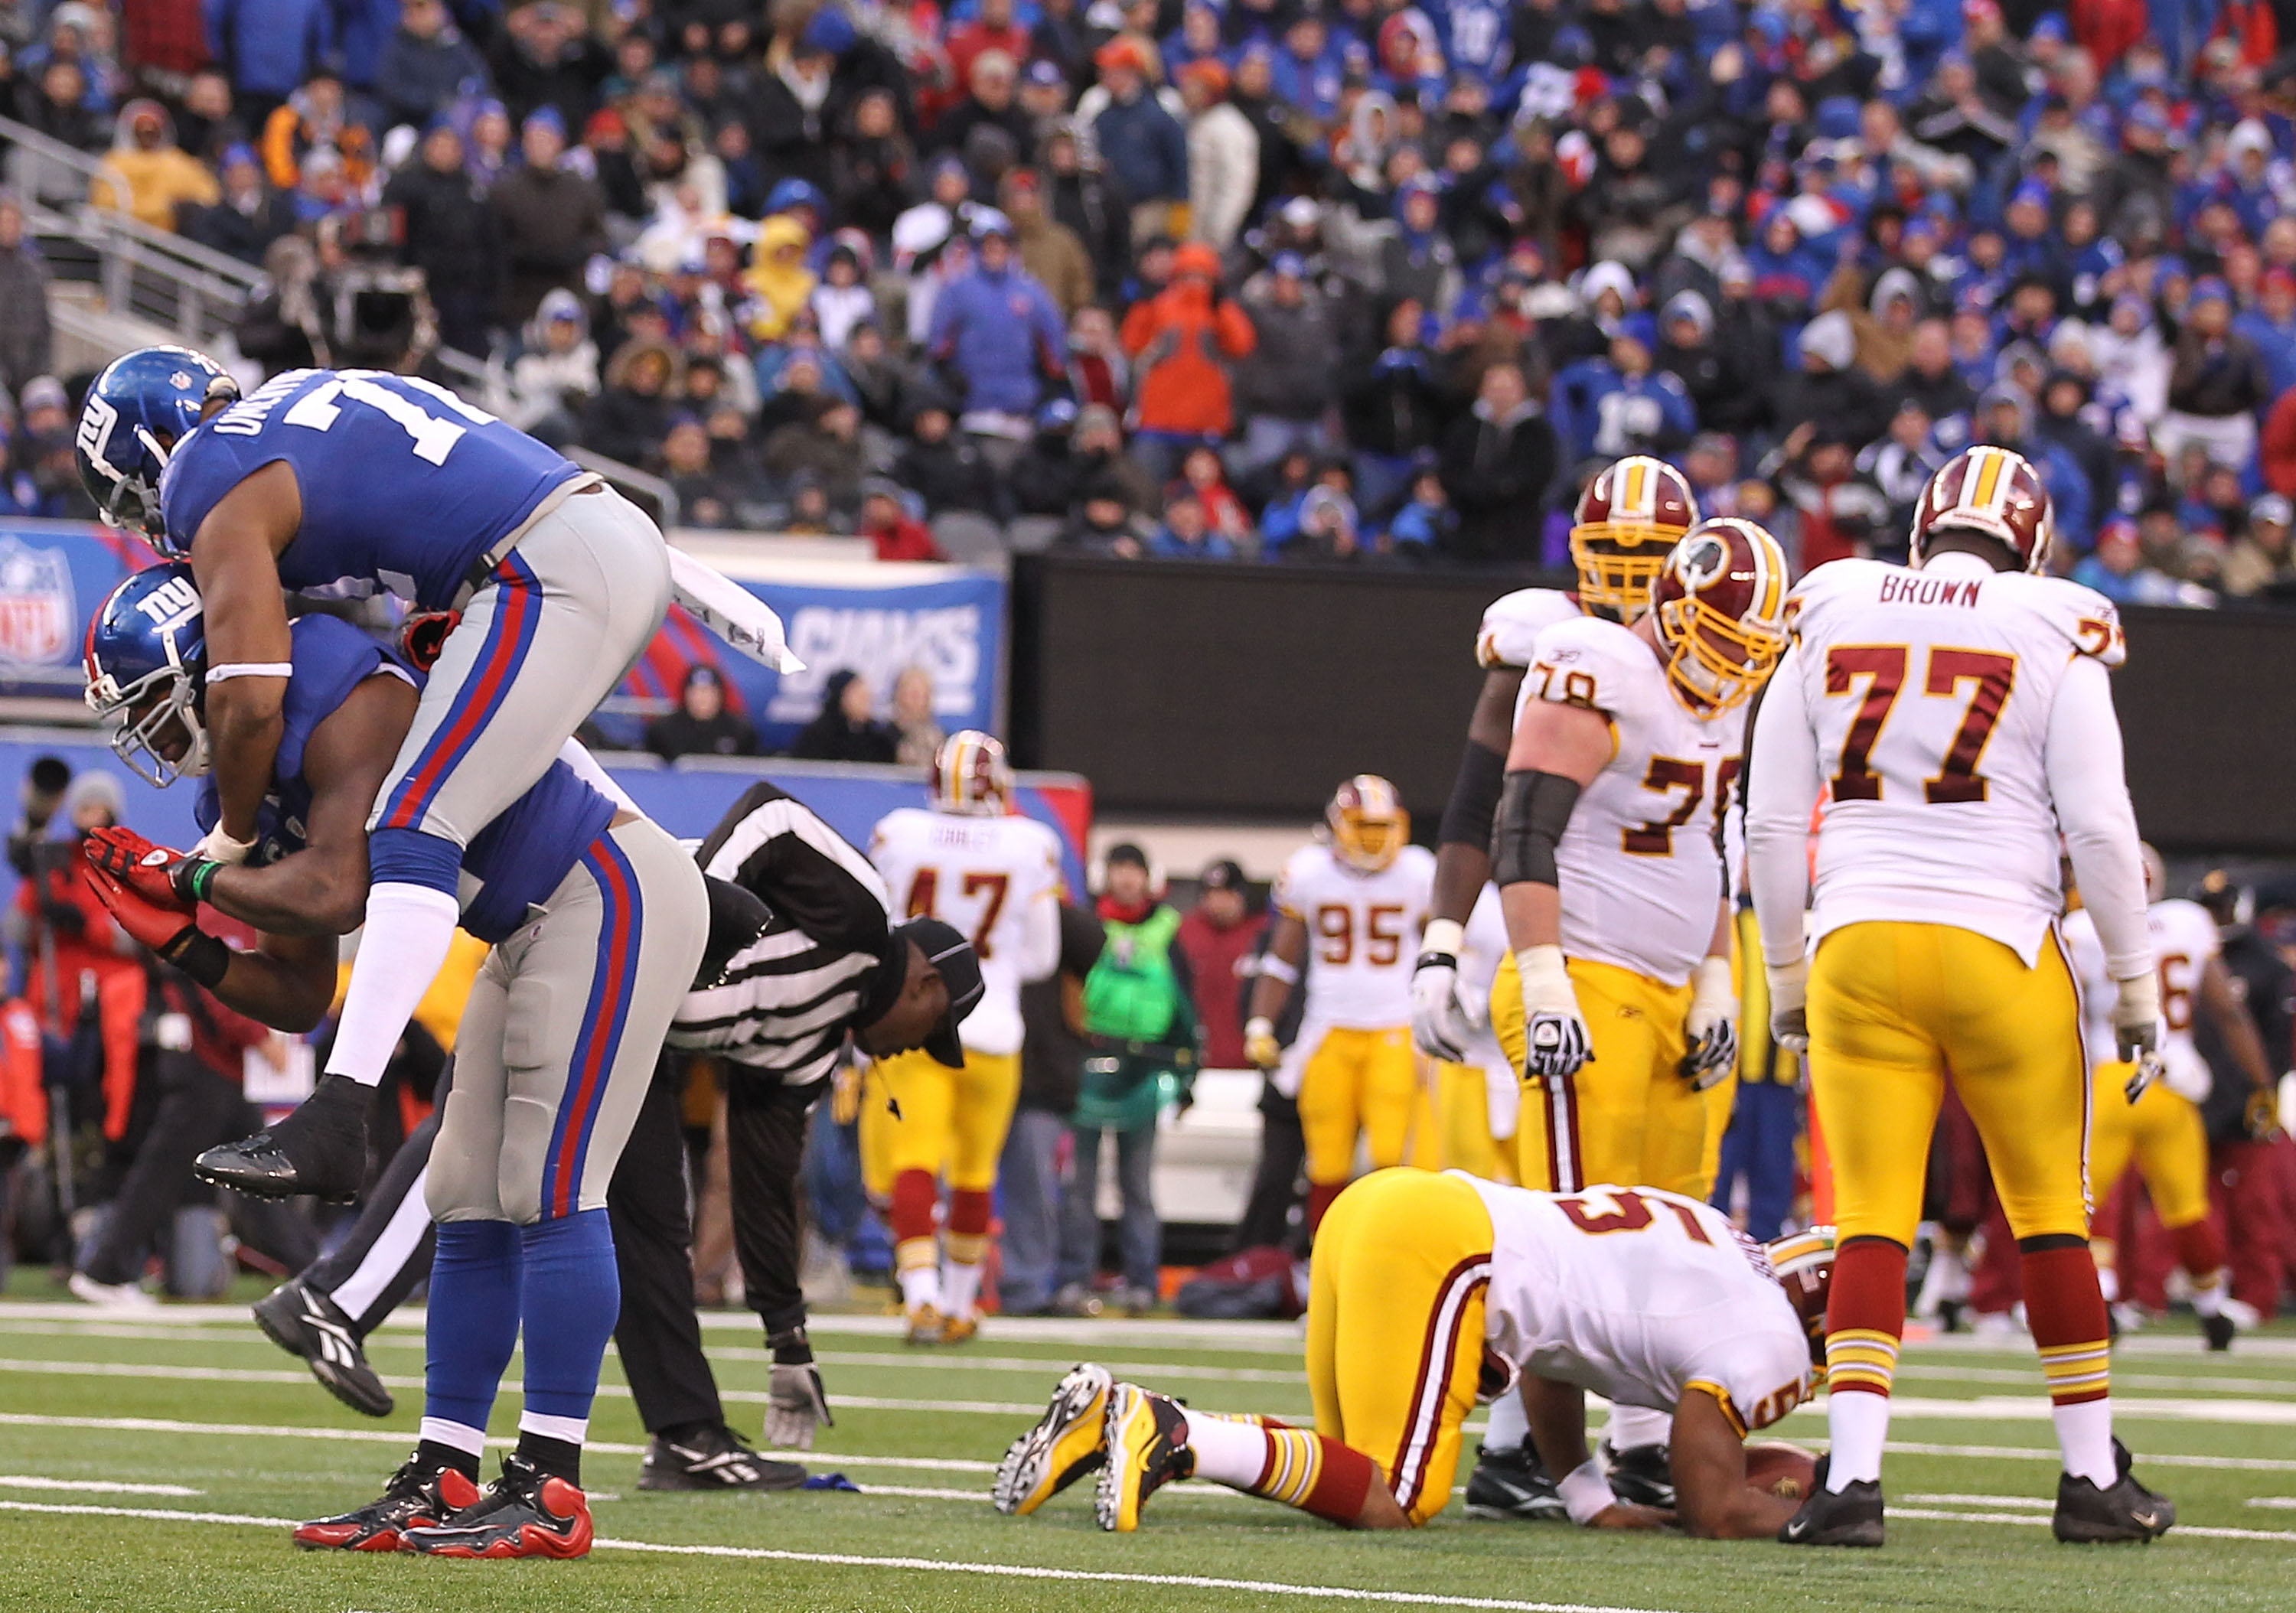 EAST RUTHERFORD, NJ - DECEMBER 05:  Justin Tuck #91 of the New York Giants celebrates with Osi Umenyiora #72 after Tuck sacked Donovan McNabb #5 of the Washington Redskins who fumbled and loset the ball during their game on December 5, 2010 at The New Mea